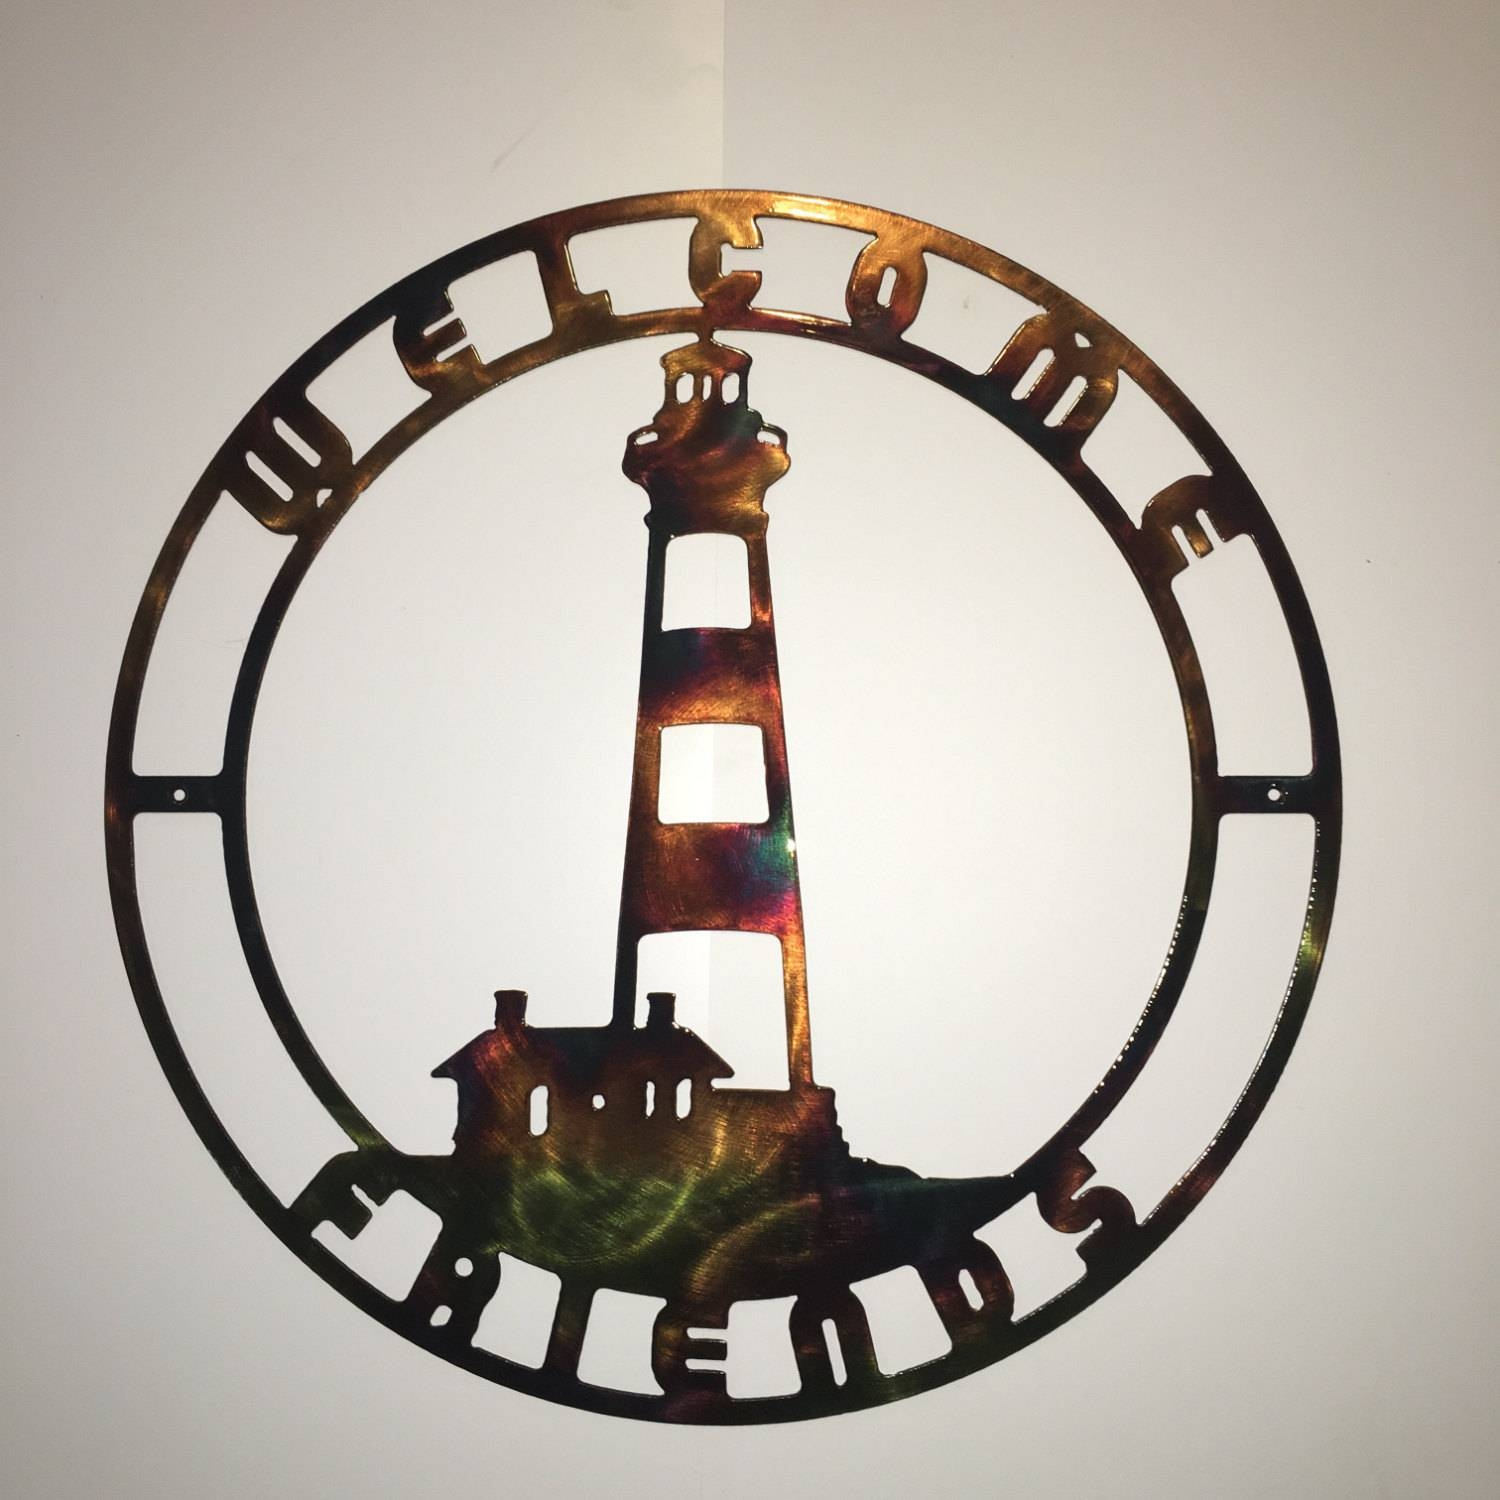 Bodie Island Nc Lighthouse Indoor Or Outdoor Plasma Cut Metal Wall Art Within Newest Plasma Cut Metal Wall Art (Gallery 6 of 20)